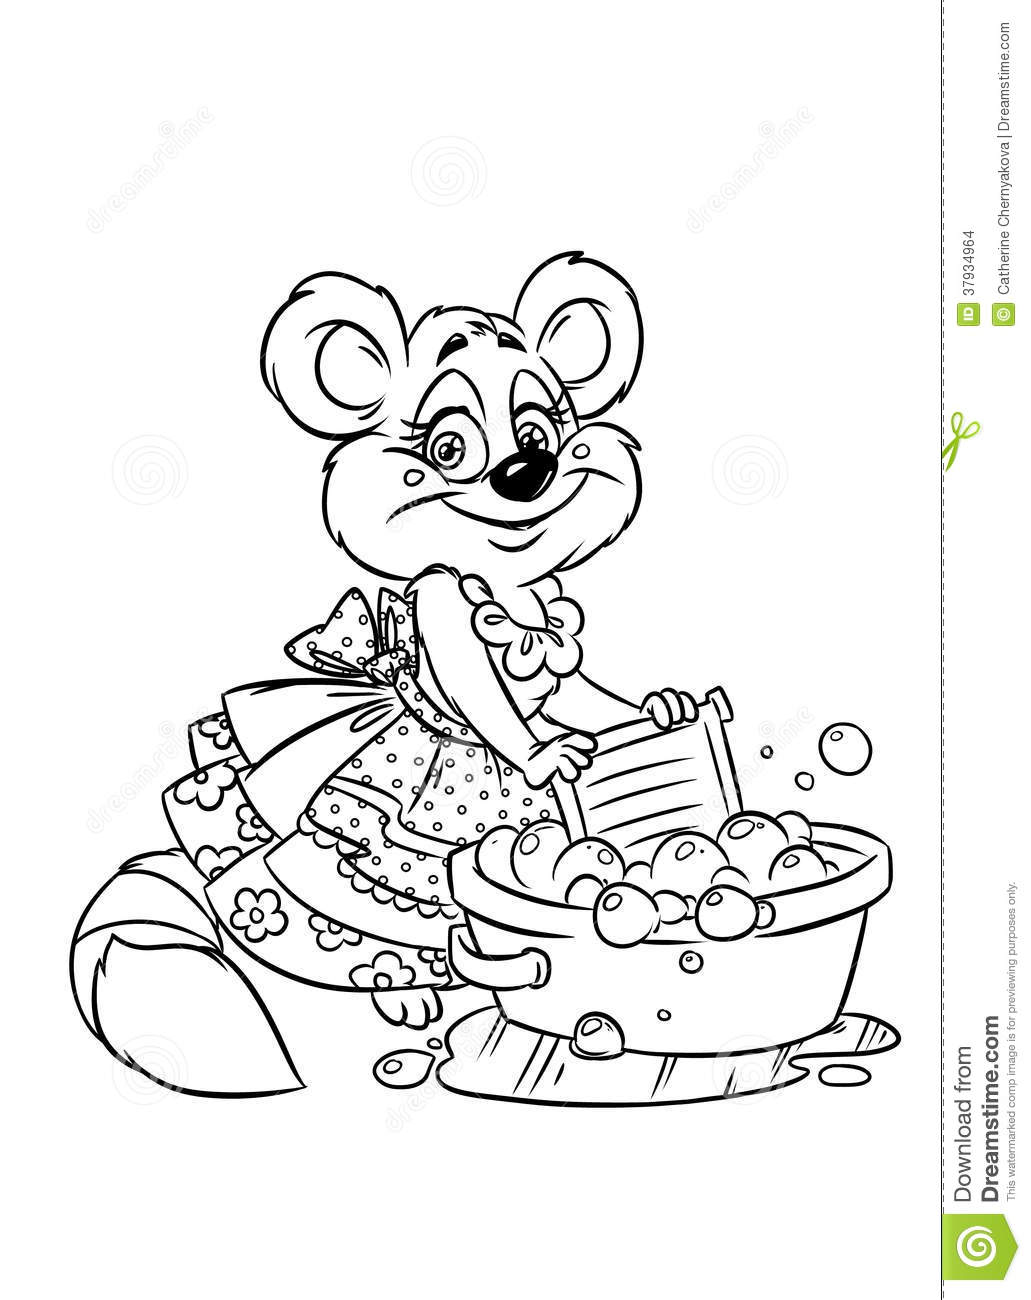 Raccoon Hostess Erases Coloring Pages Stock Images